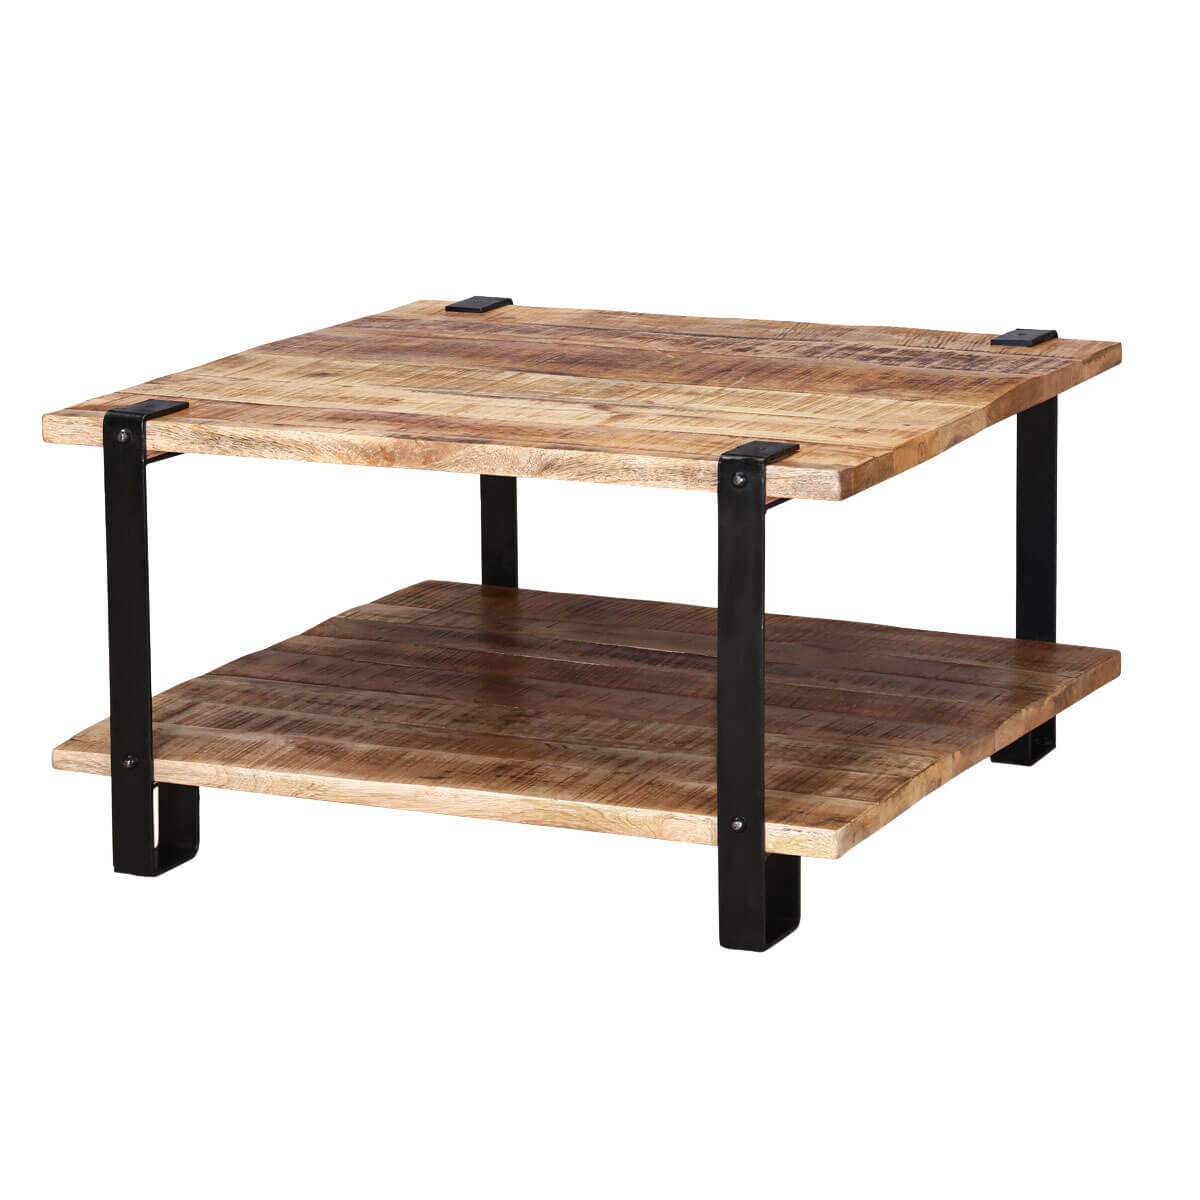 Roxborough Rustic Industrial Square Coffee Table With Saw Marks